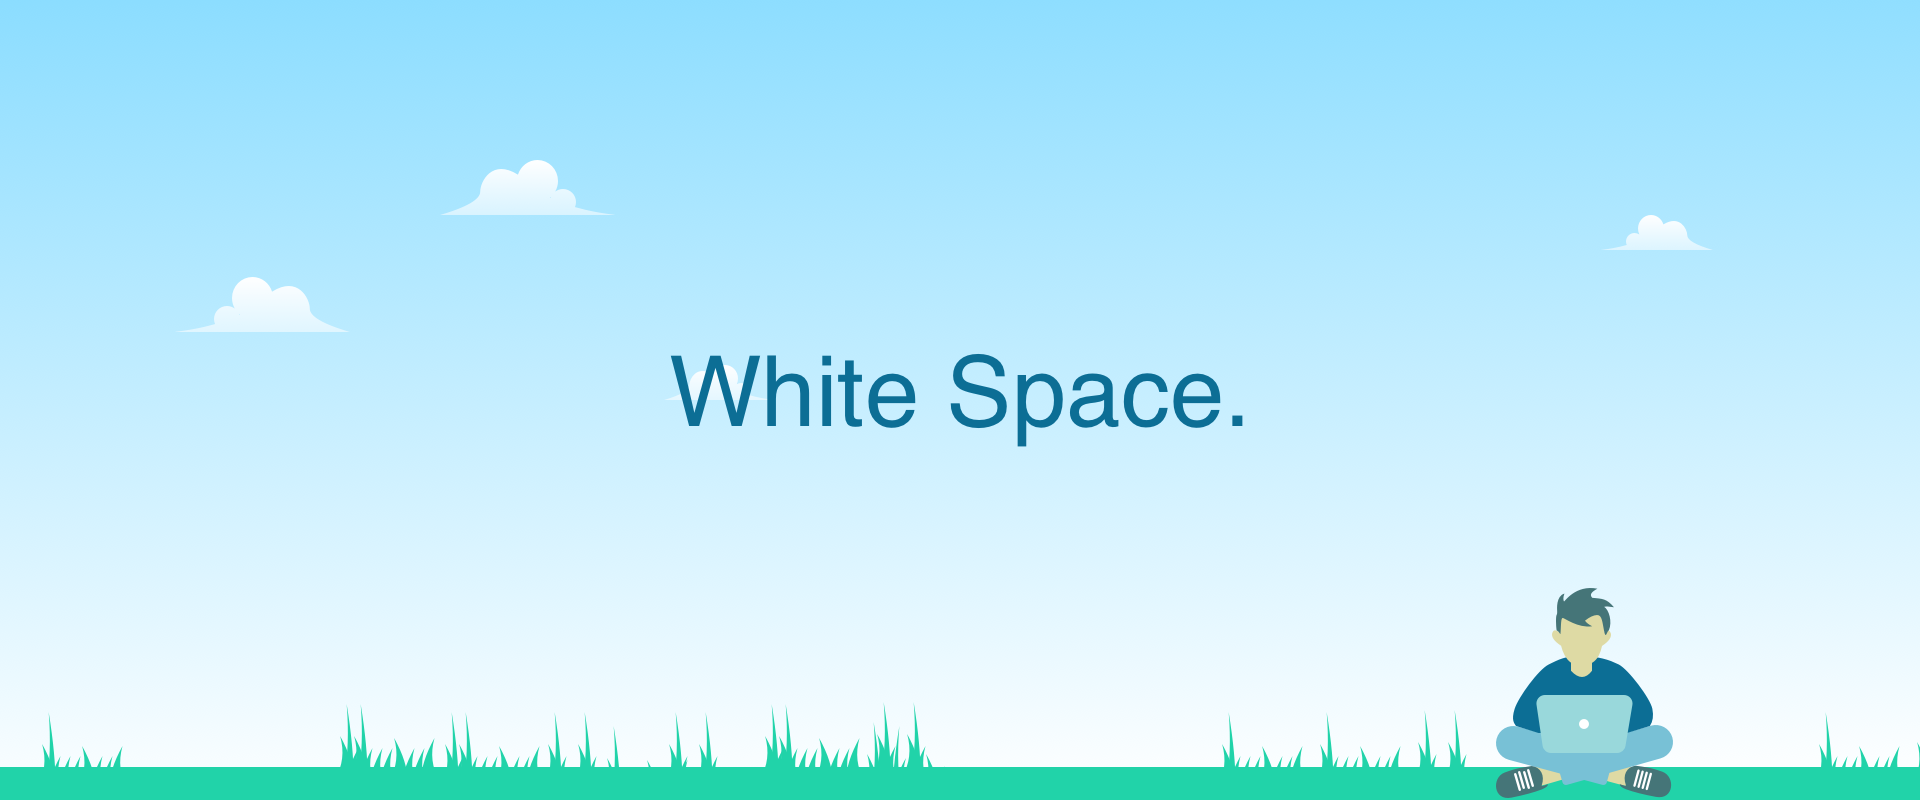 Illustration representing whitespace